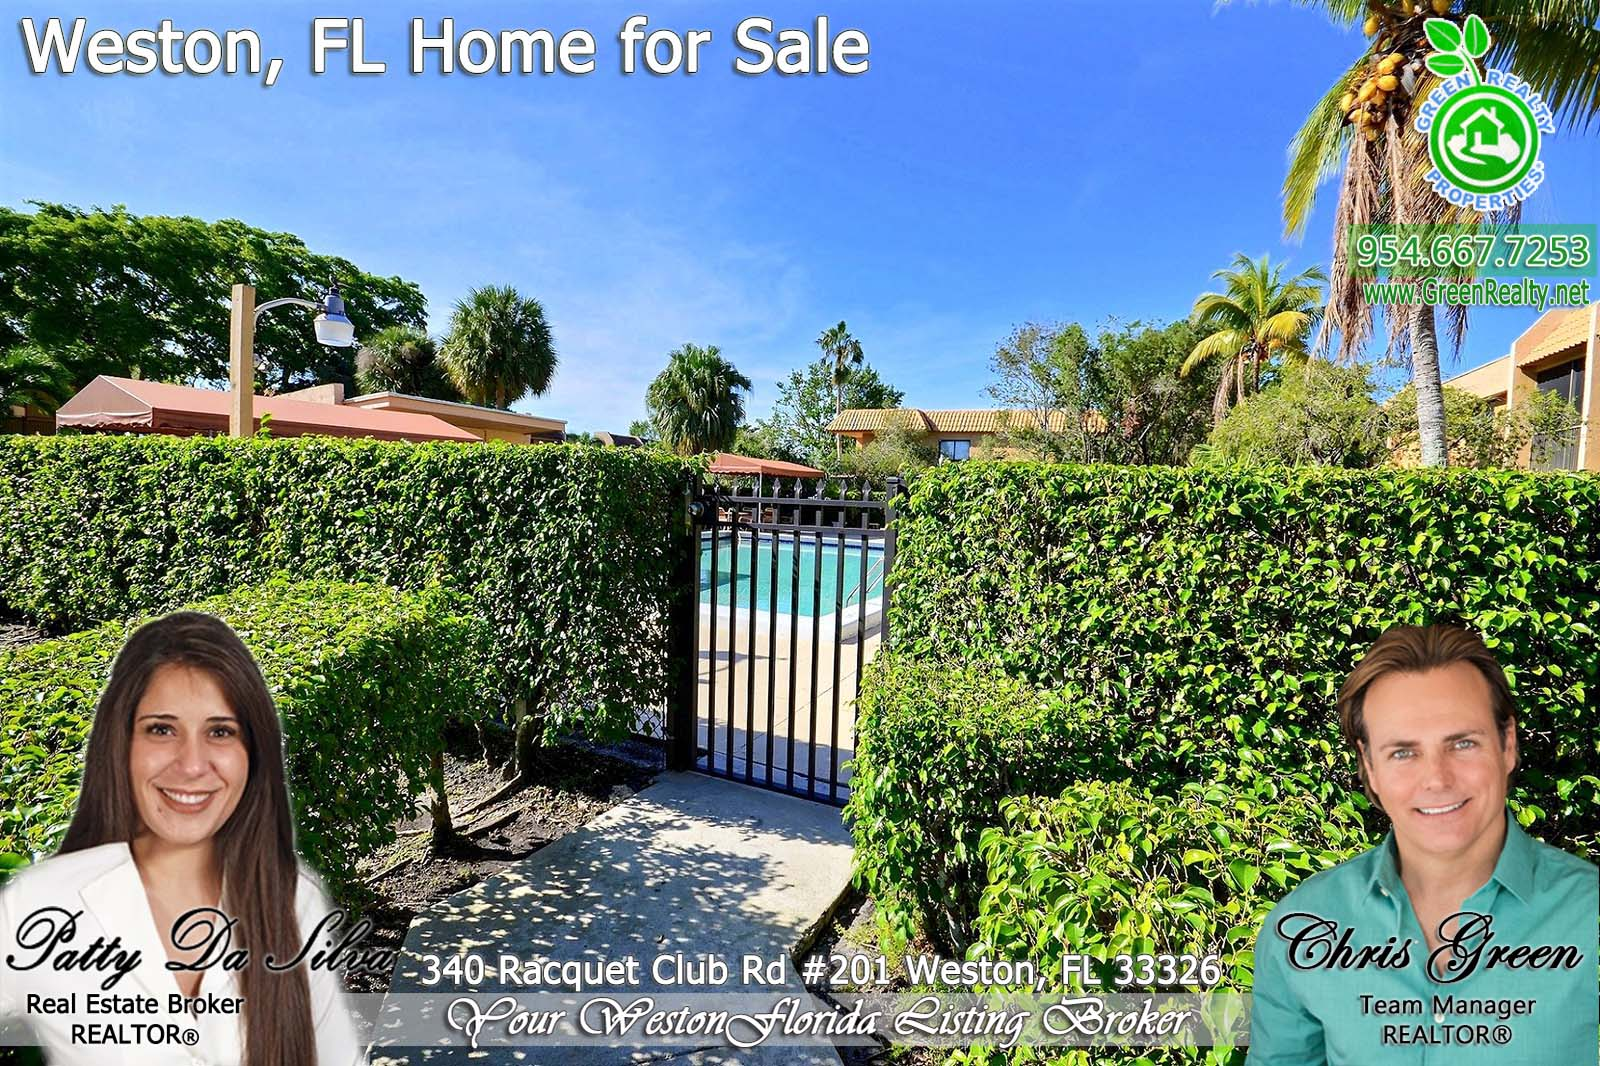 23 Homes For Sale in Weston Florida